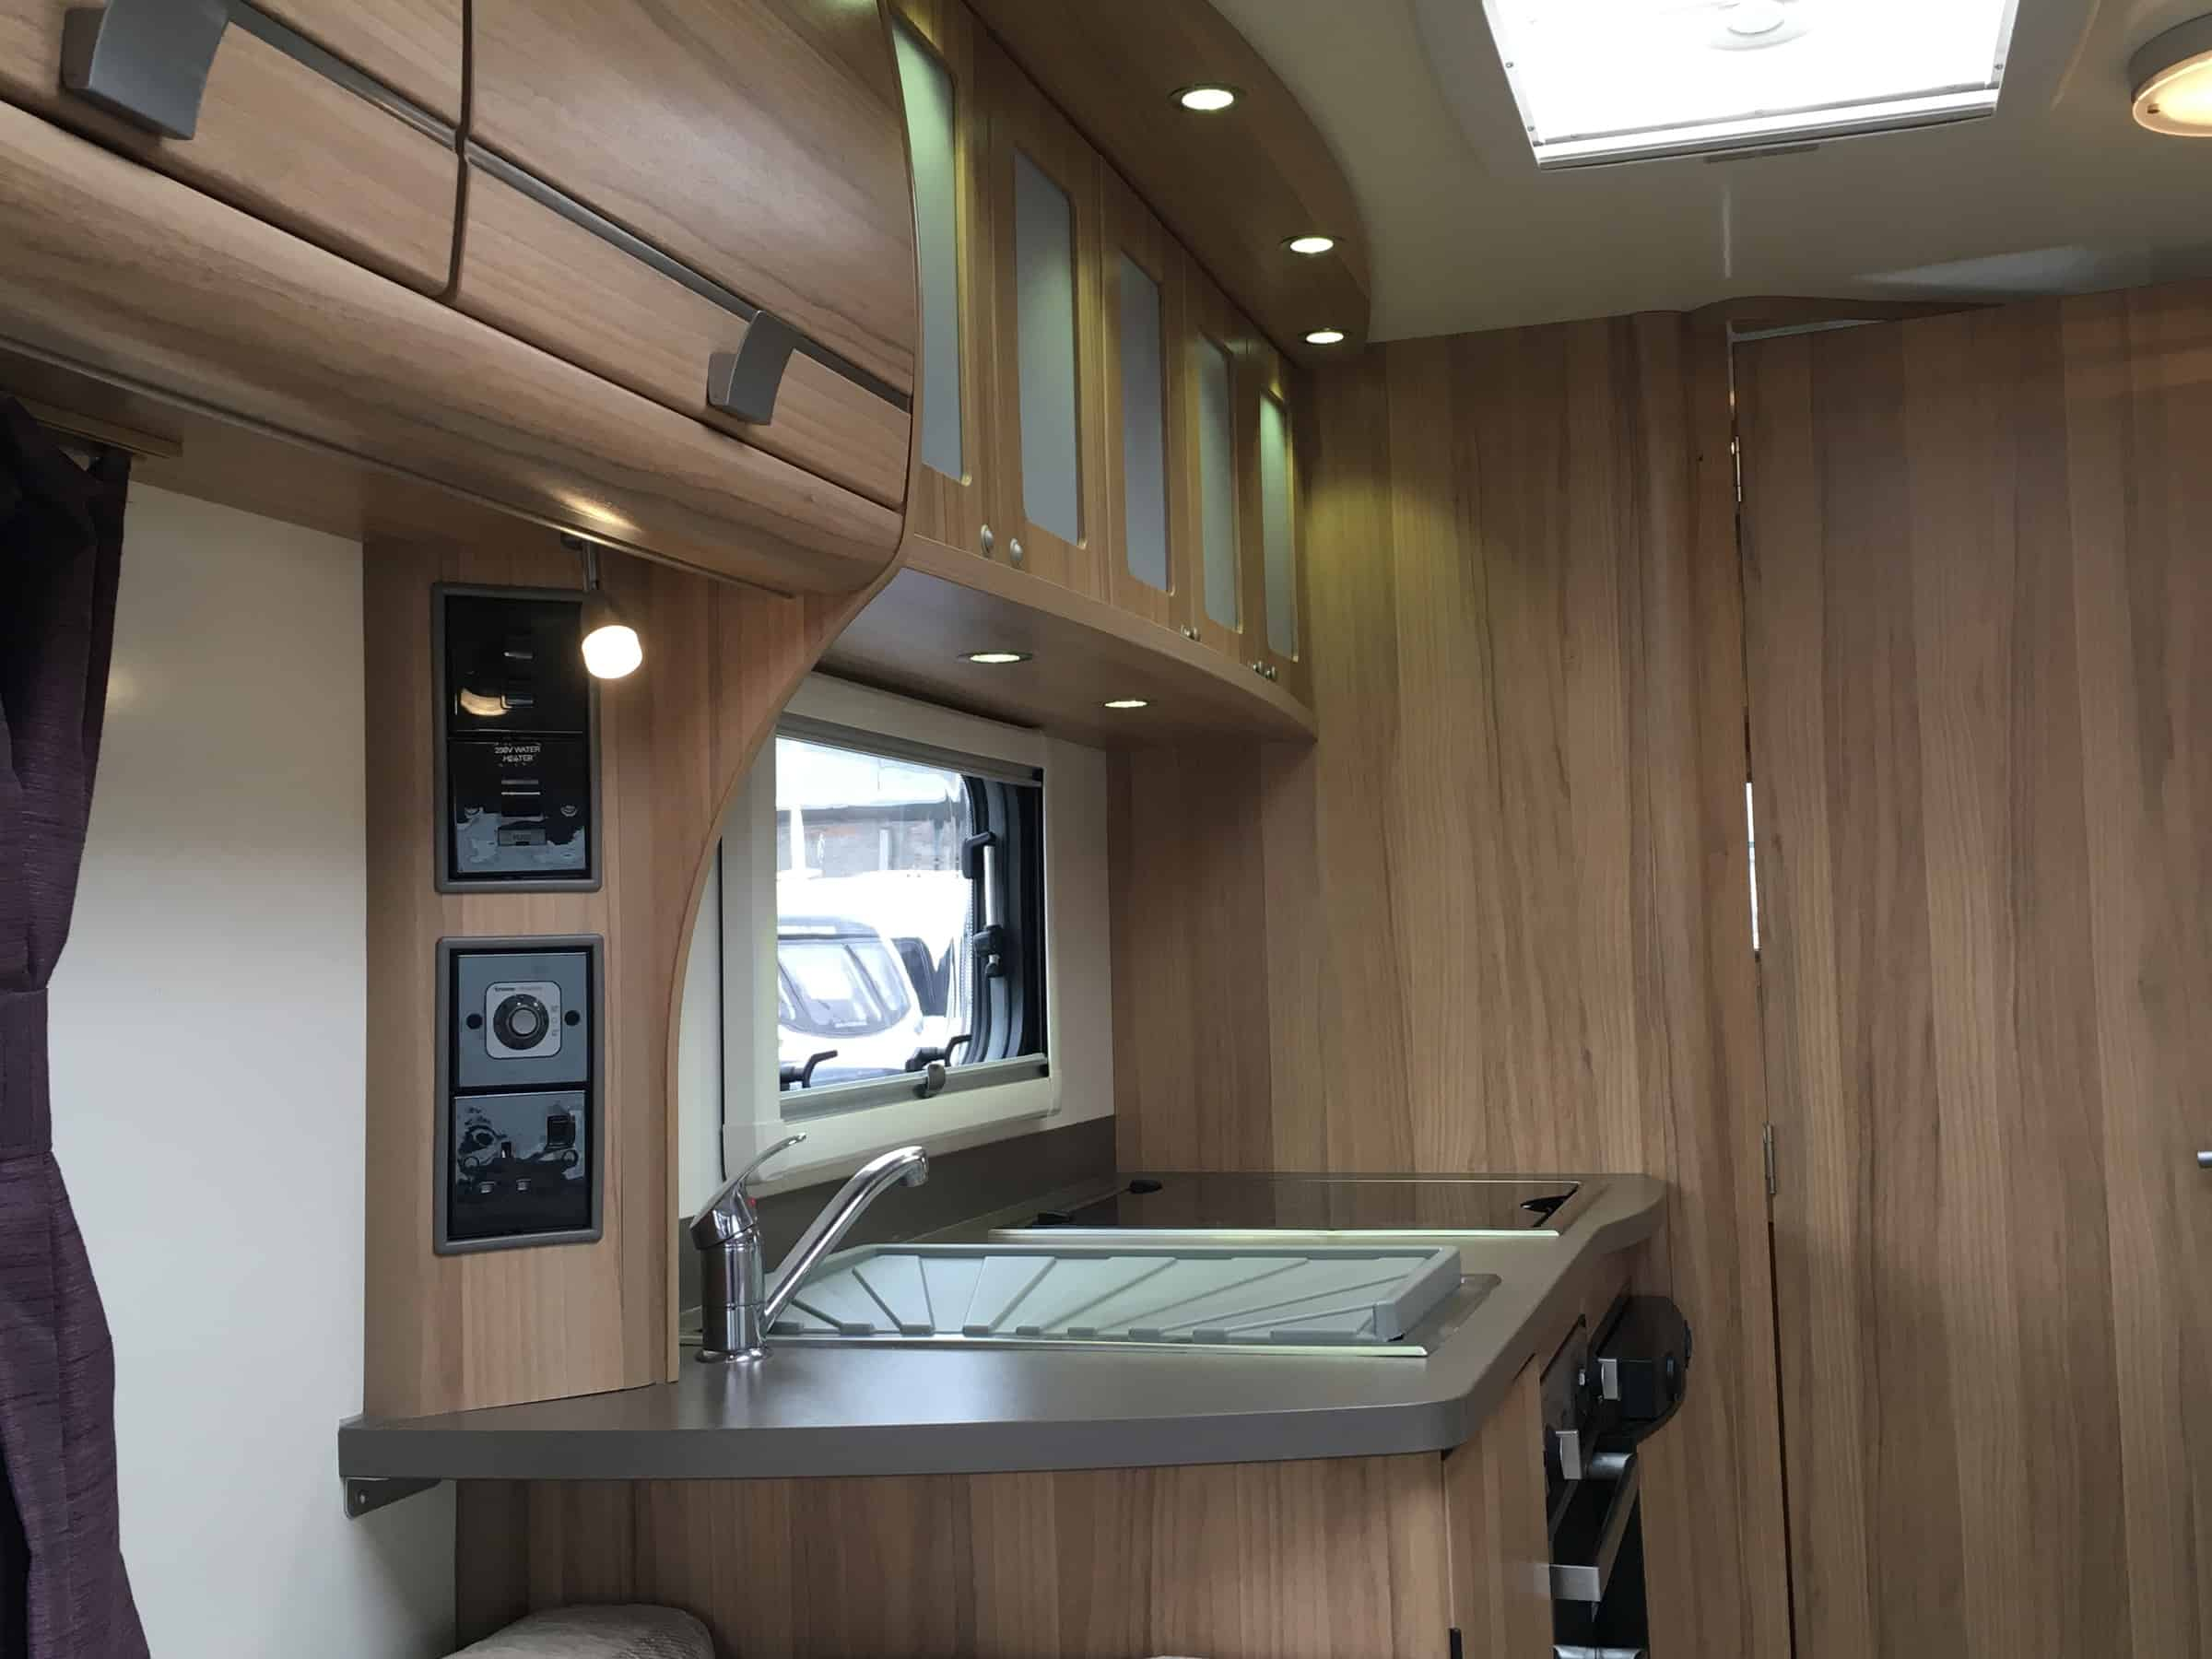 Bailey Pegasus Genoa S2 2013 2 berth caravan stunning rear washroom with lovely lounge and a very ample kitchen .